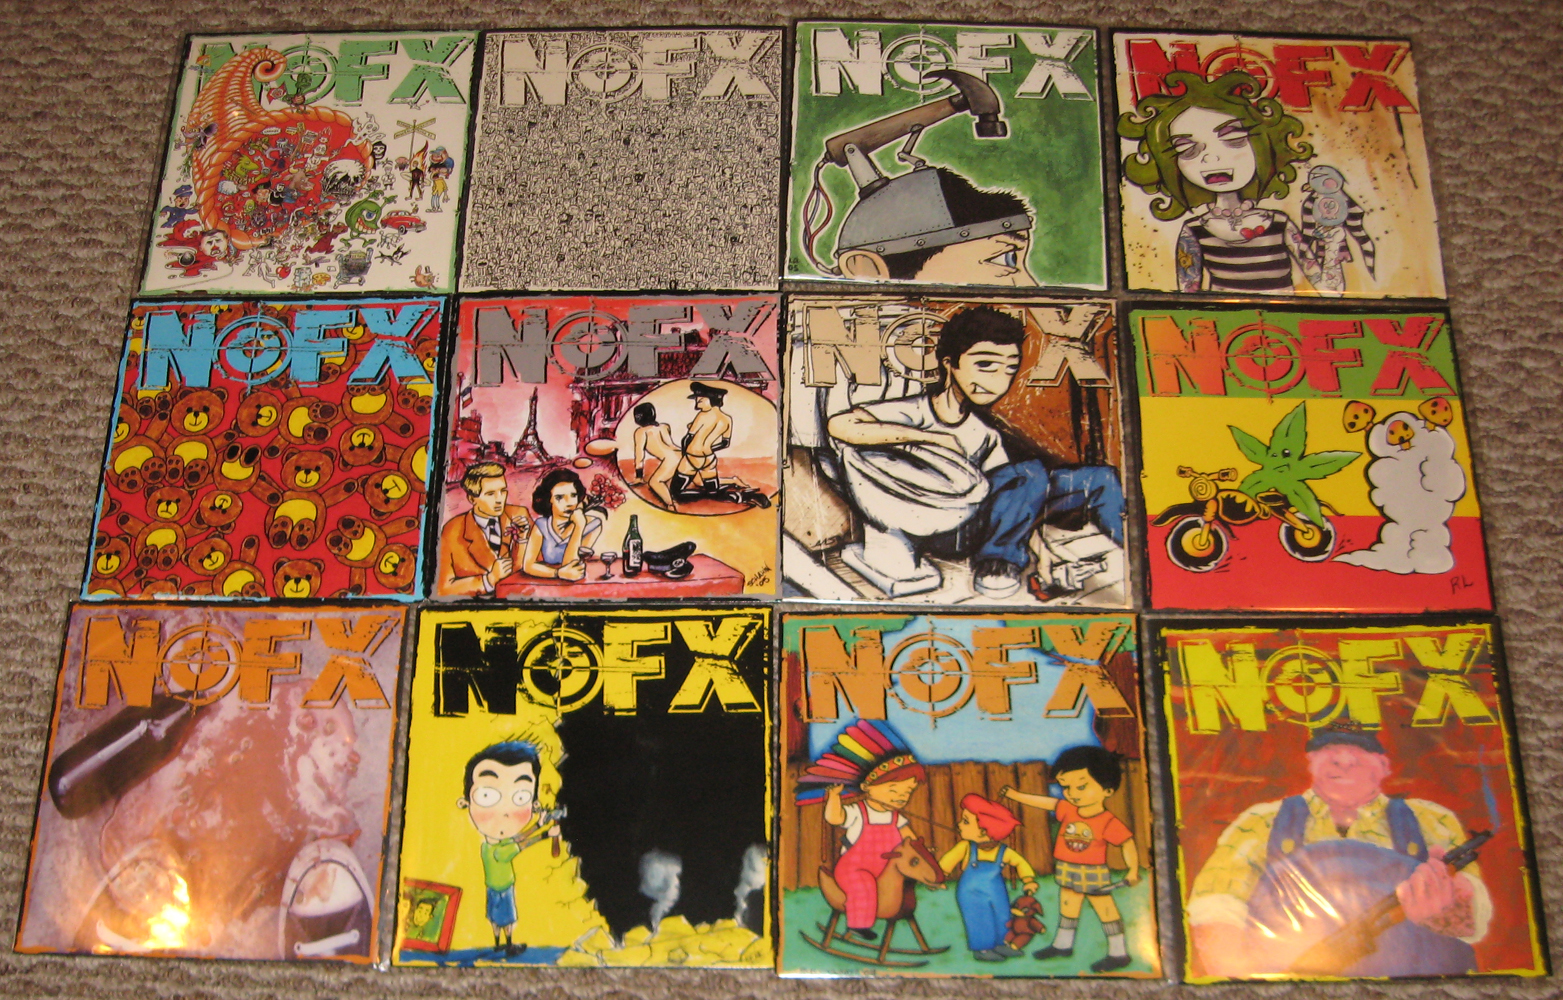 Abstract Realityartmusiclife Nofx 7 Of The Month Club